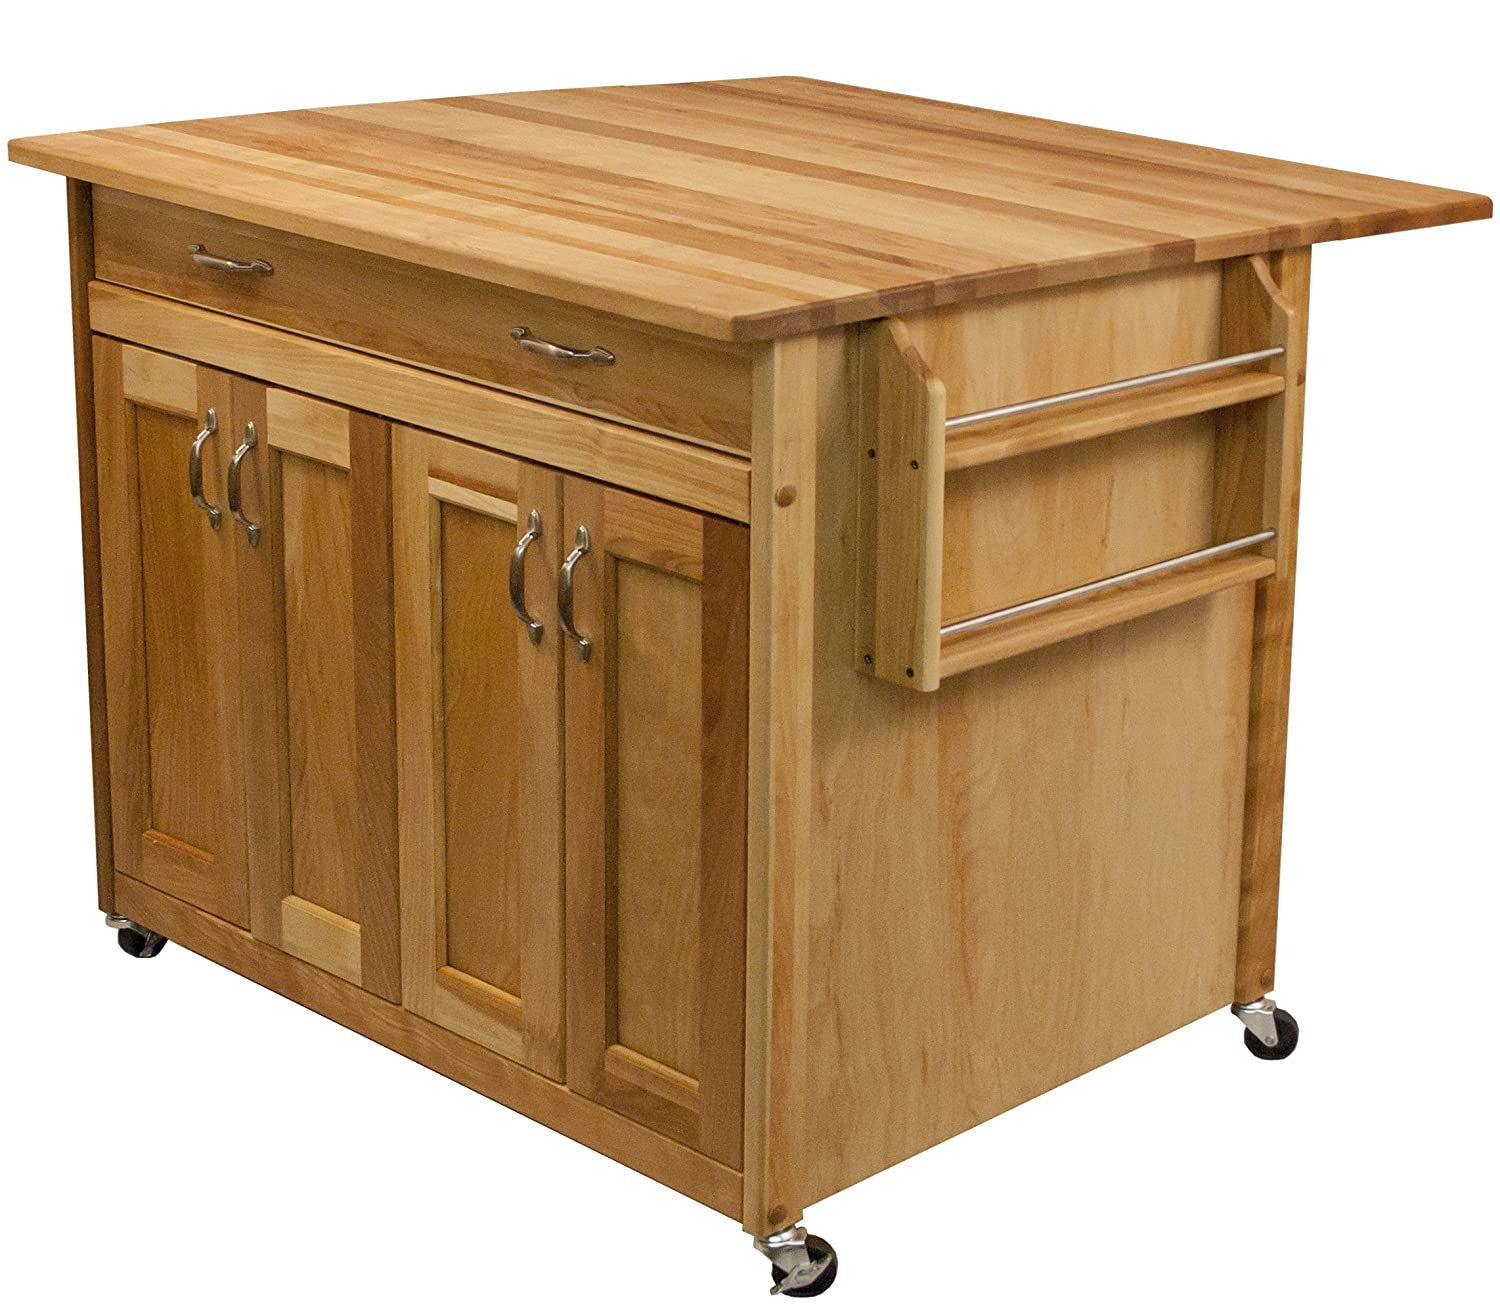 Superieur Amazon.com   Catskill Craftsmen Deep Island With Flat Panel Doors And Drop  Leaf   Kitchen Islands U0026 Carts